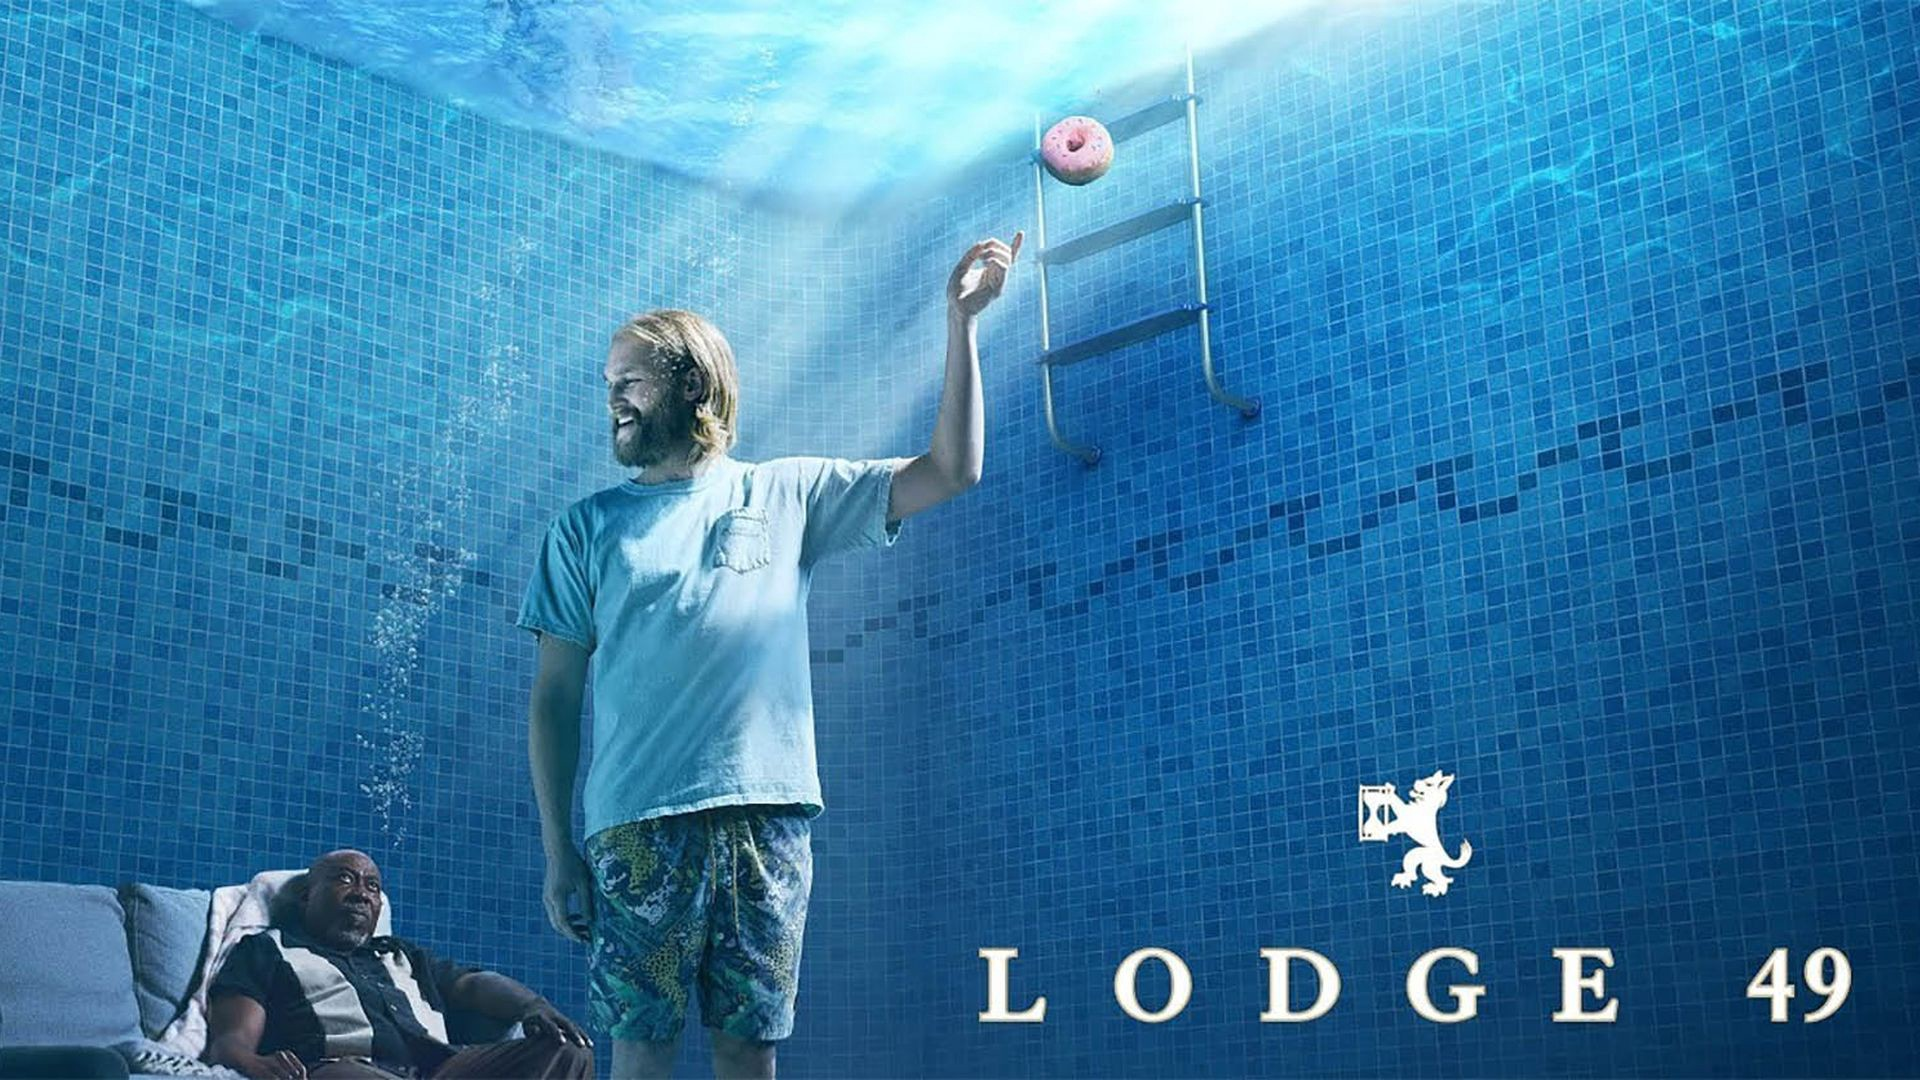 Lodge 49 Season 2 Episode 1 [Full Show] 📺 AMC - Zipporah - Medium